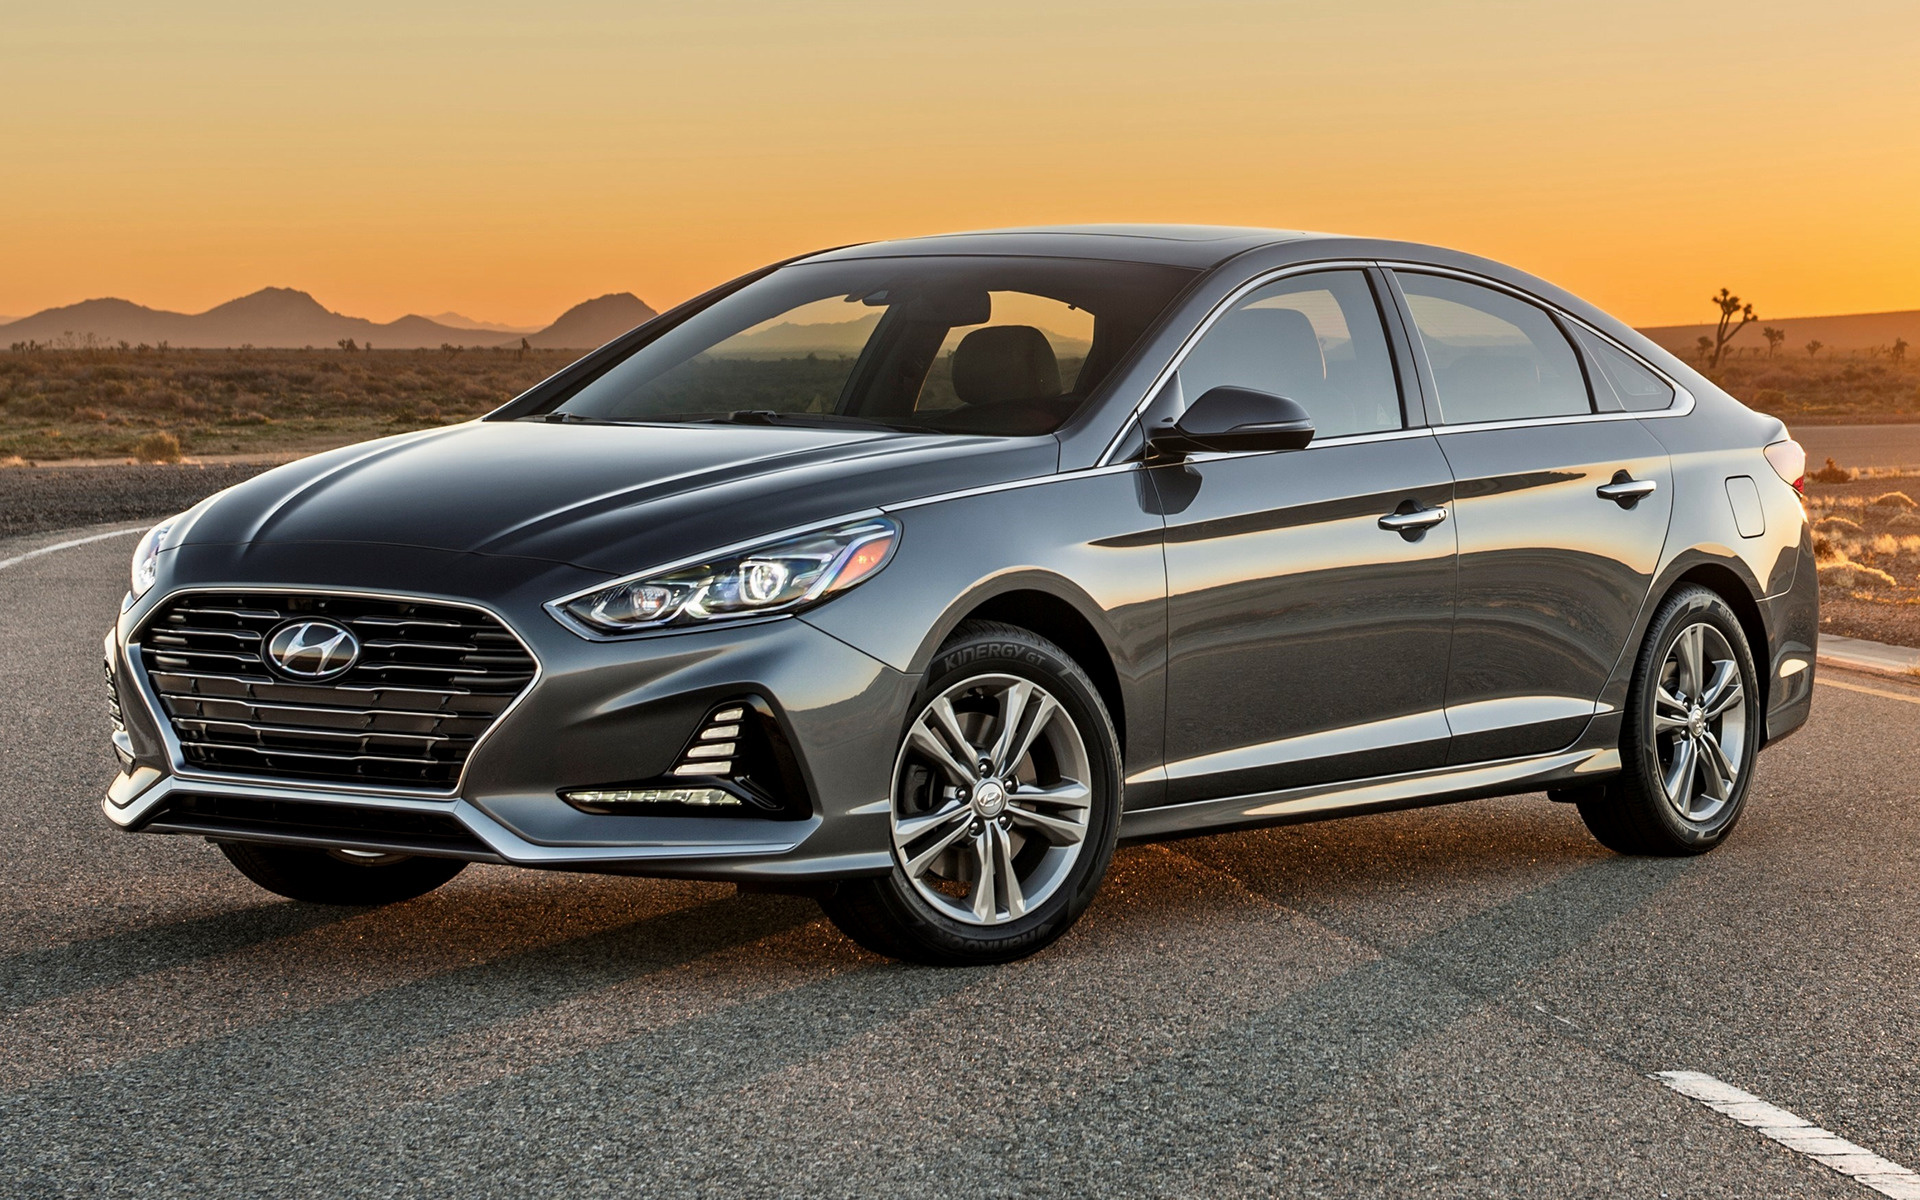 2018 Hyundai Sonata Wallpapers And Hd Images Car Pixel